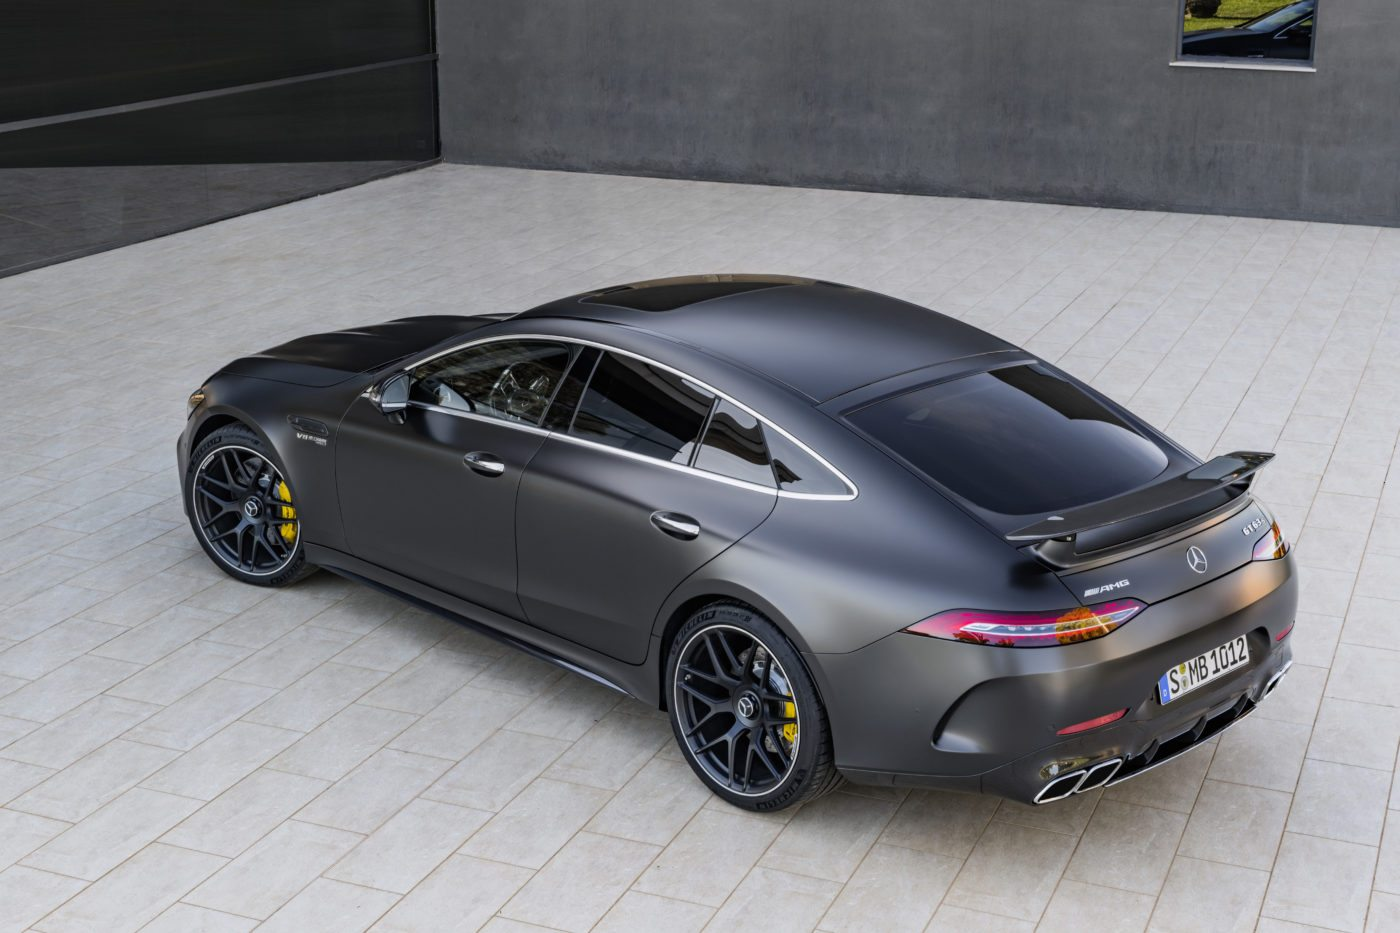 Amg gt 63 for sale